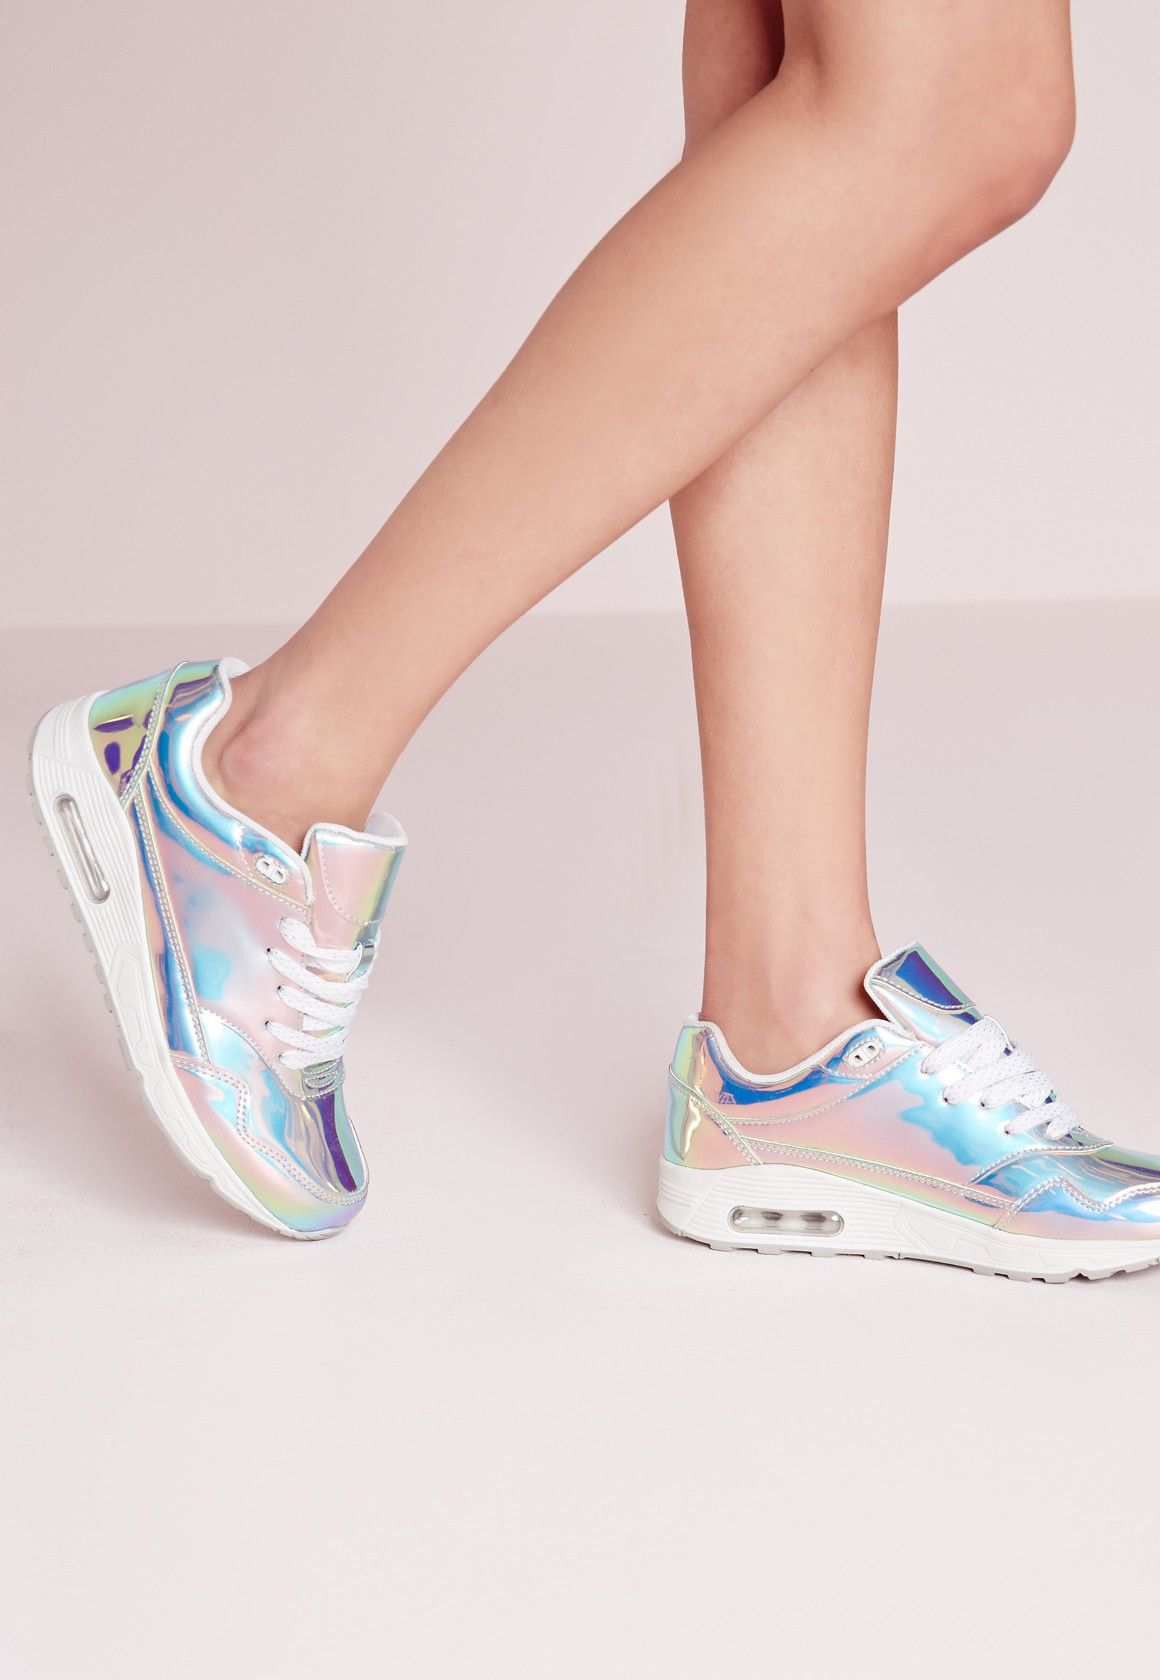 4d28fa4082b96 Look totally hot and own that treadmill at the gym in these bubble detail  trainers